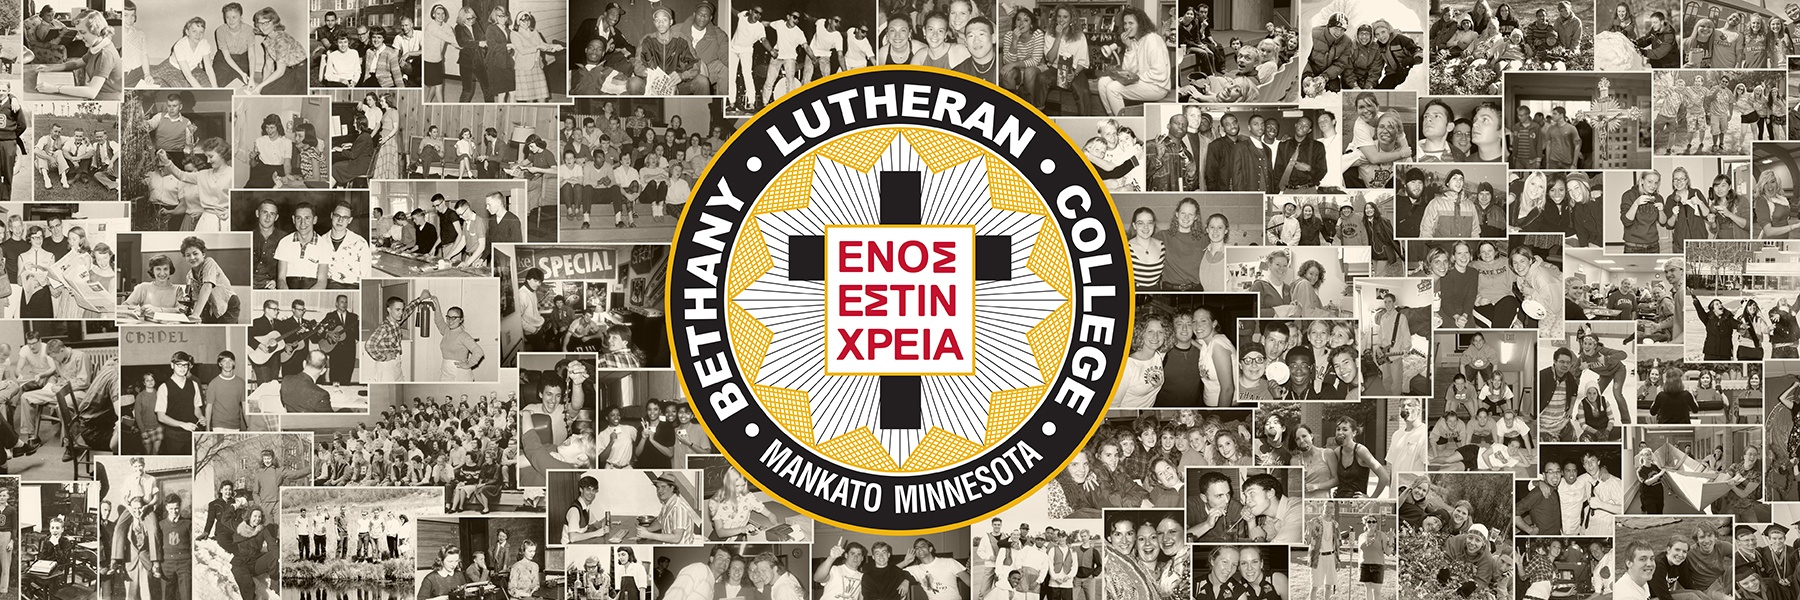 photo montage with bethany lutheran college seal